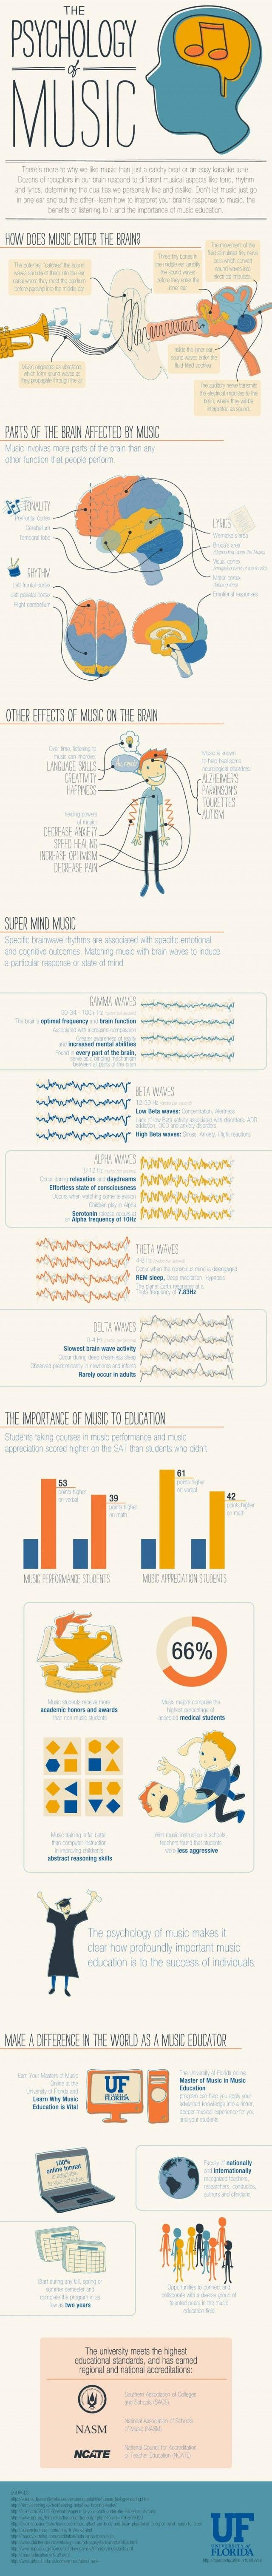 Psychology behind music. According to the graphic, music actually involves more parts of the brain than any other human function. It also increases language skills, creativity, and overall happiness (to name a few).